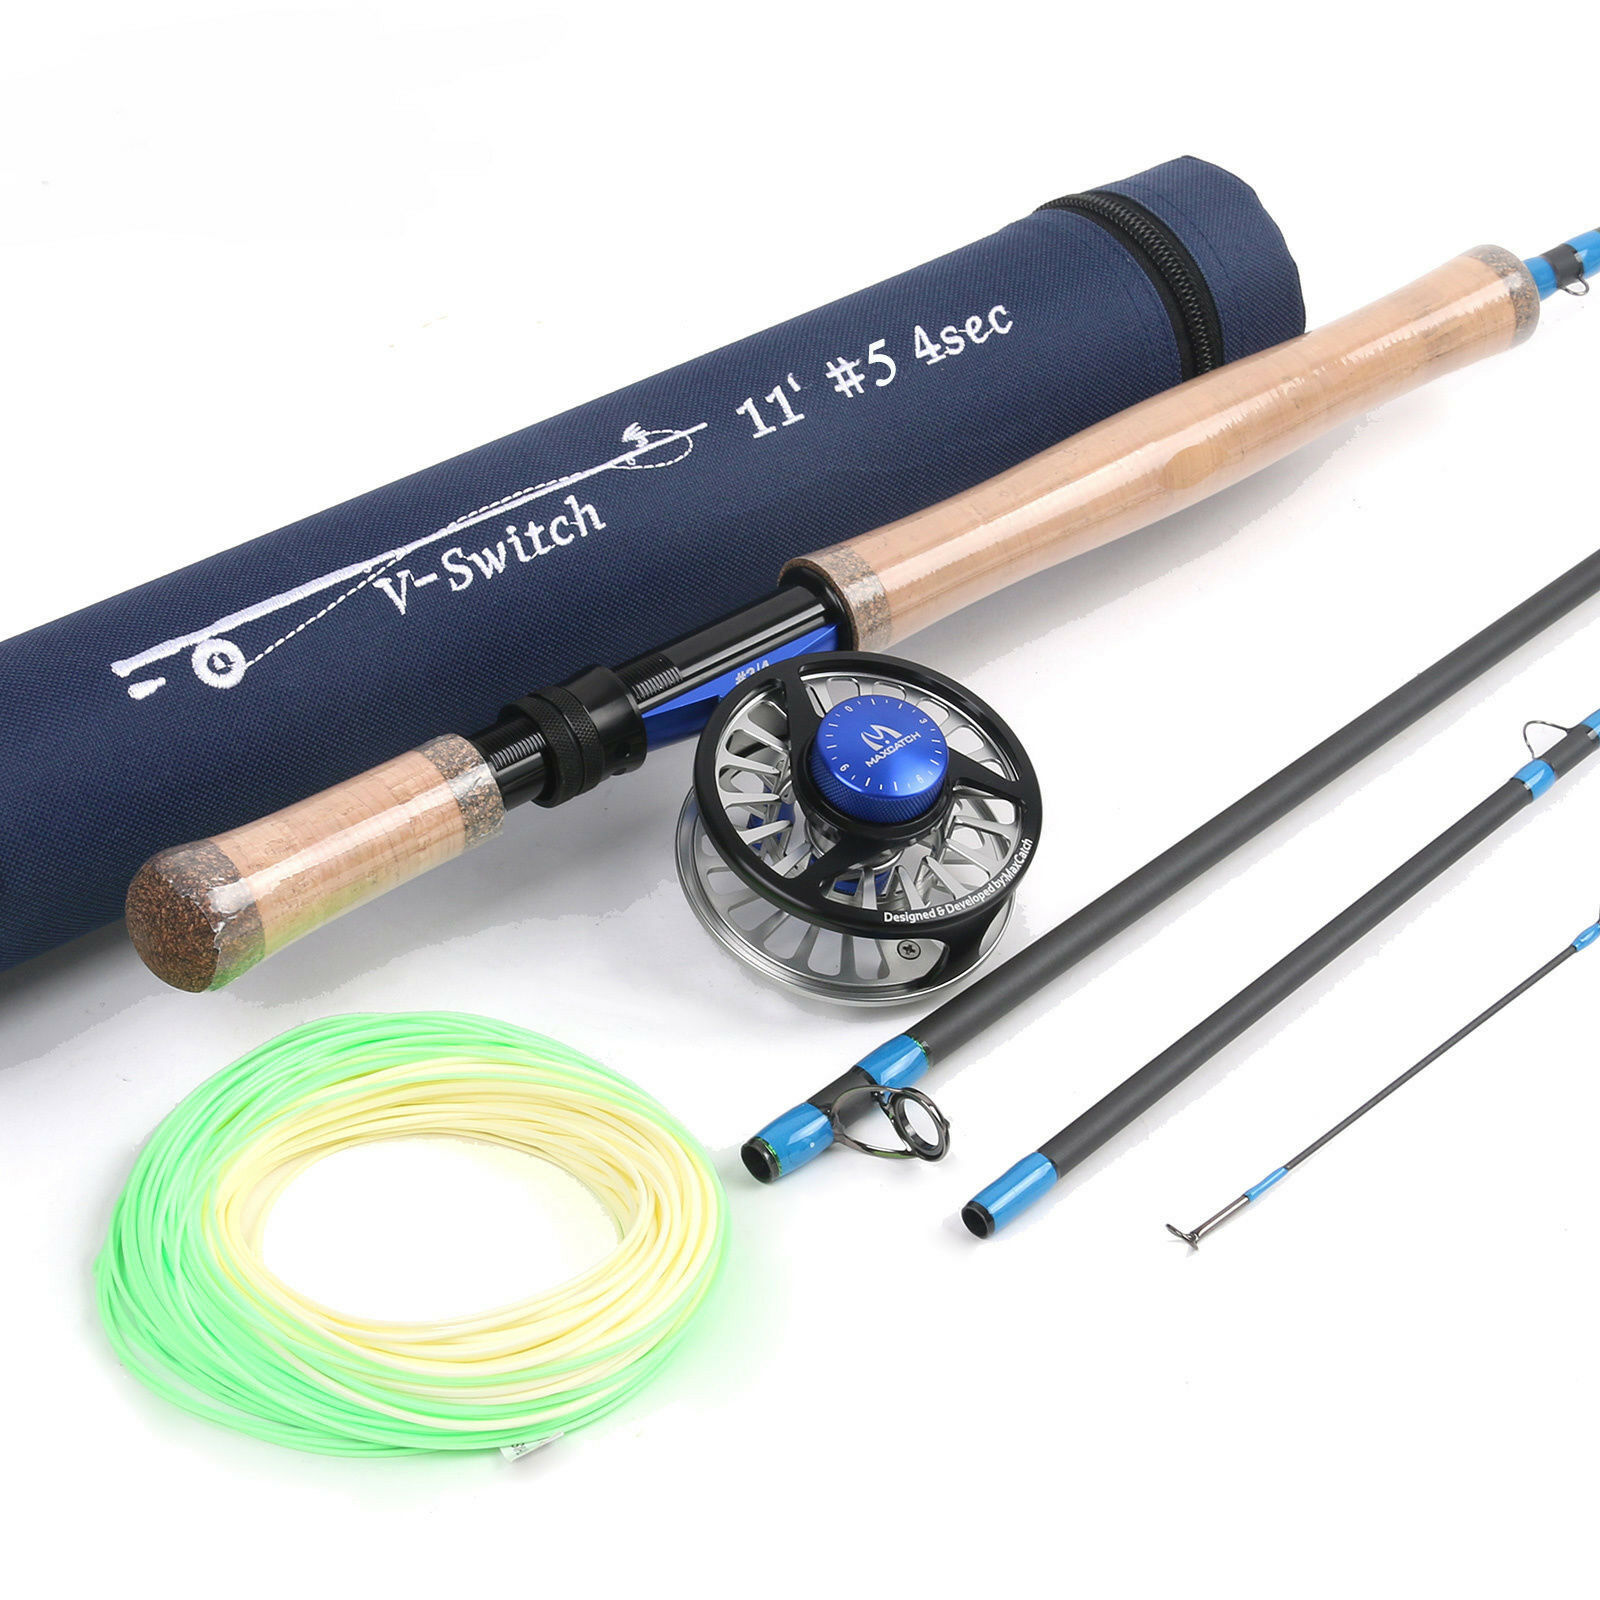 5WT  Fly Fishing Switch Rod 11ft 4Sec with Fly Reel 5 6WT & Fly Fishing Line Kit  classic style